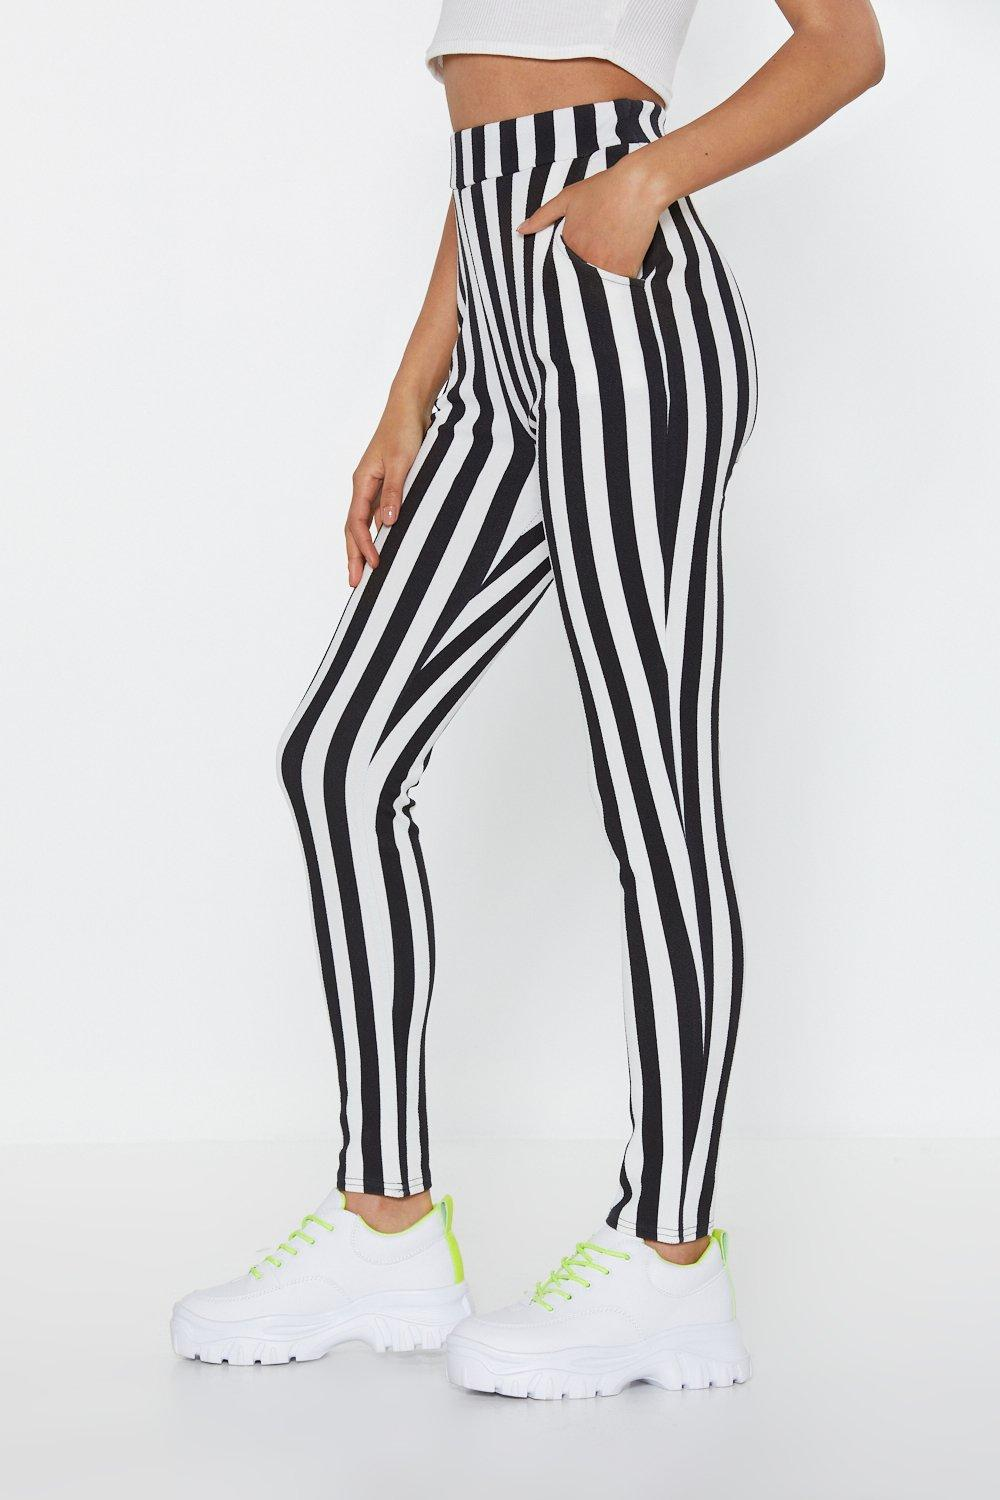 271b4555c2d58 Line Your Pockets Striped Leggings | Shop Clothes at Nasty Gal!